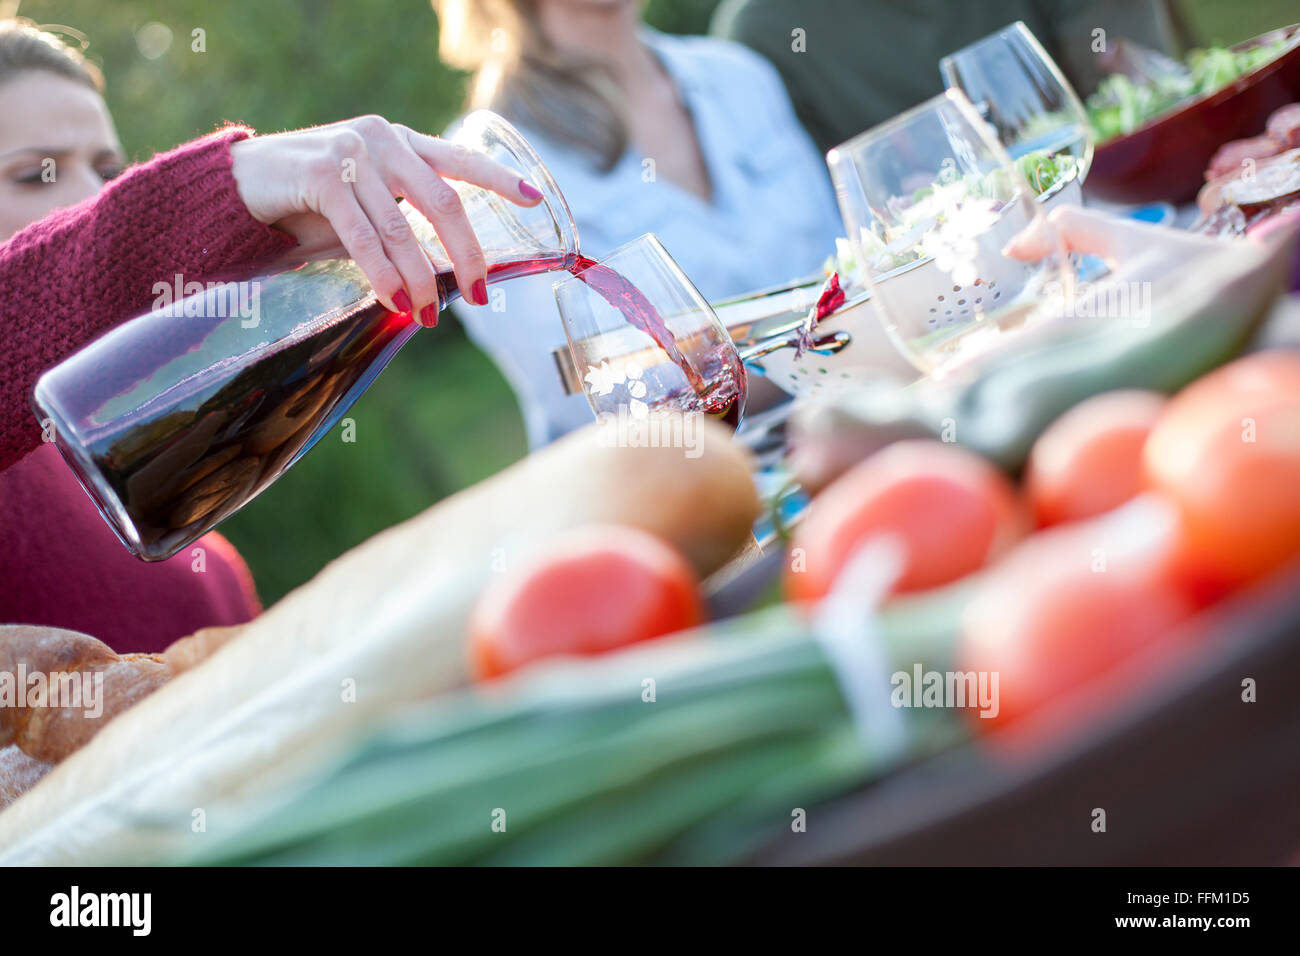 Pouring red wine into glass on garden party - Stock Image